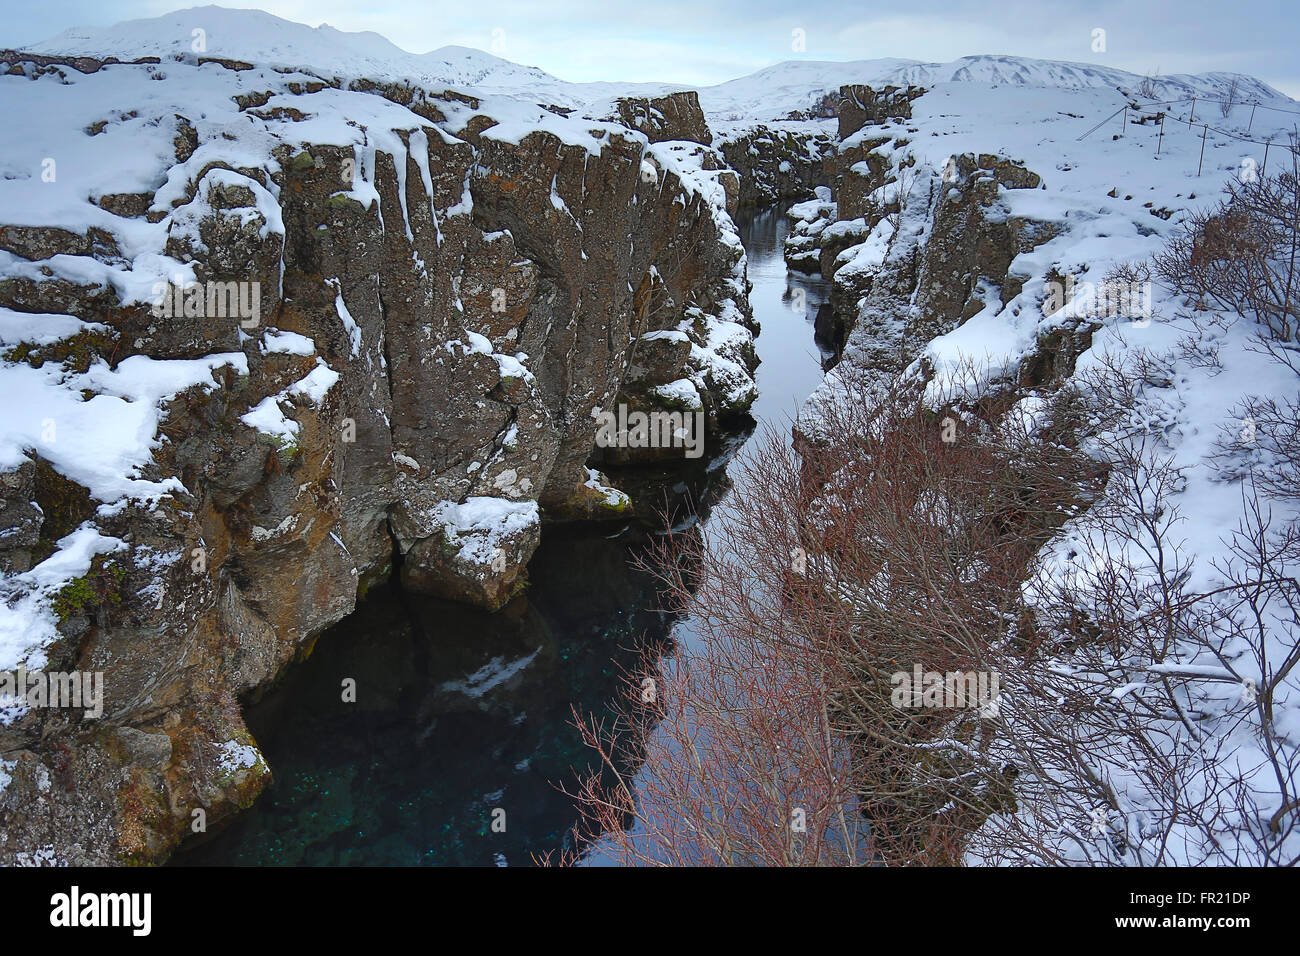 Faute tectonique Islande Photo Stock